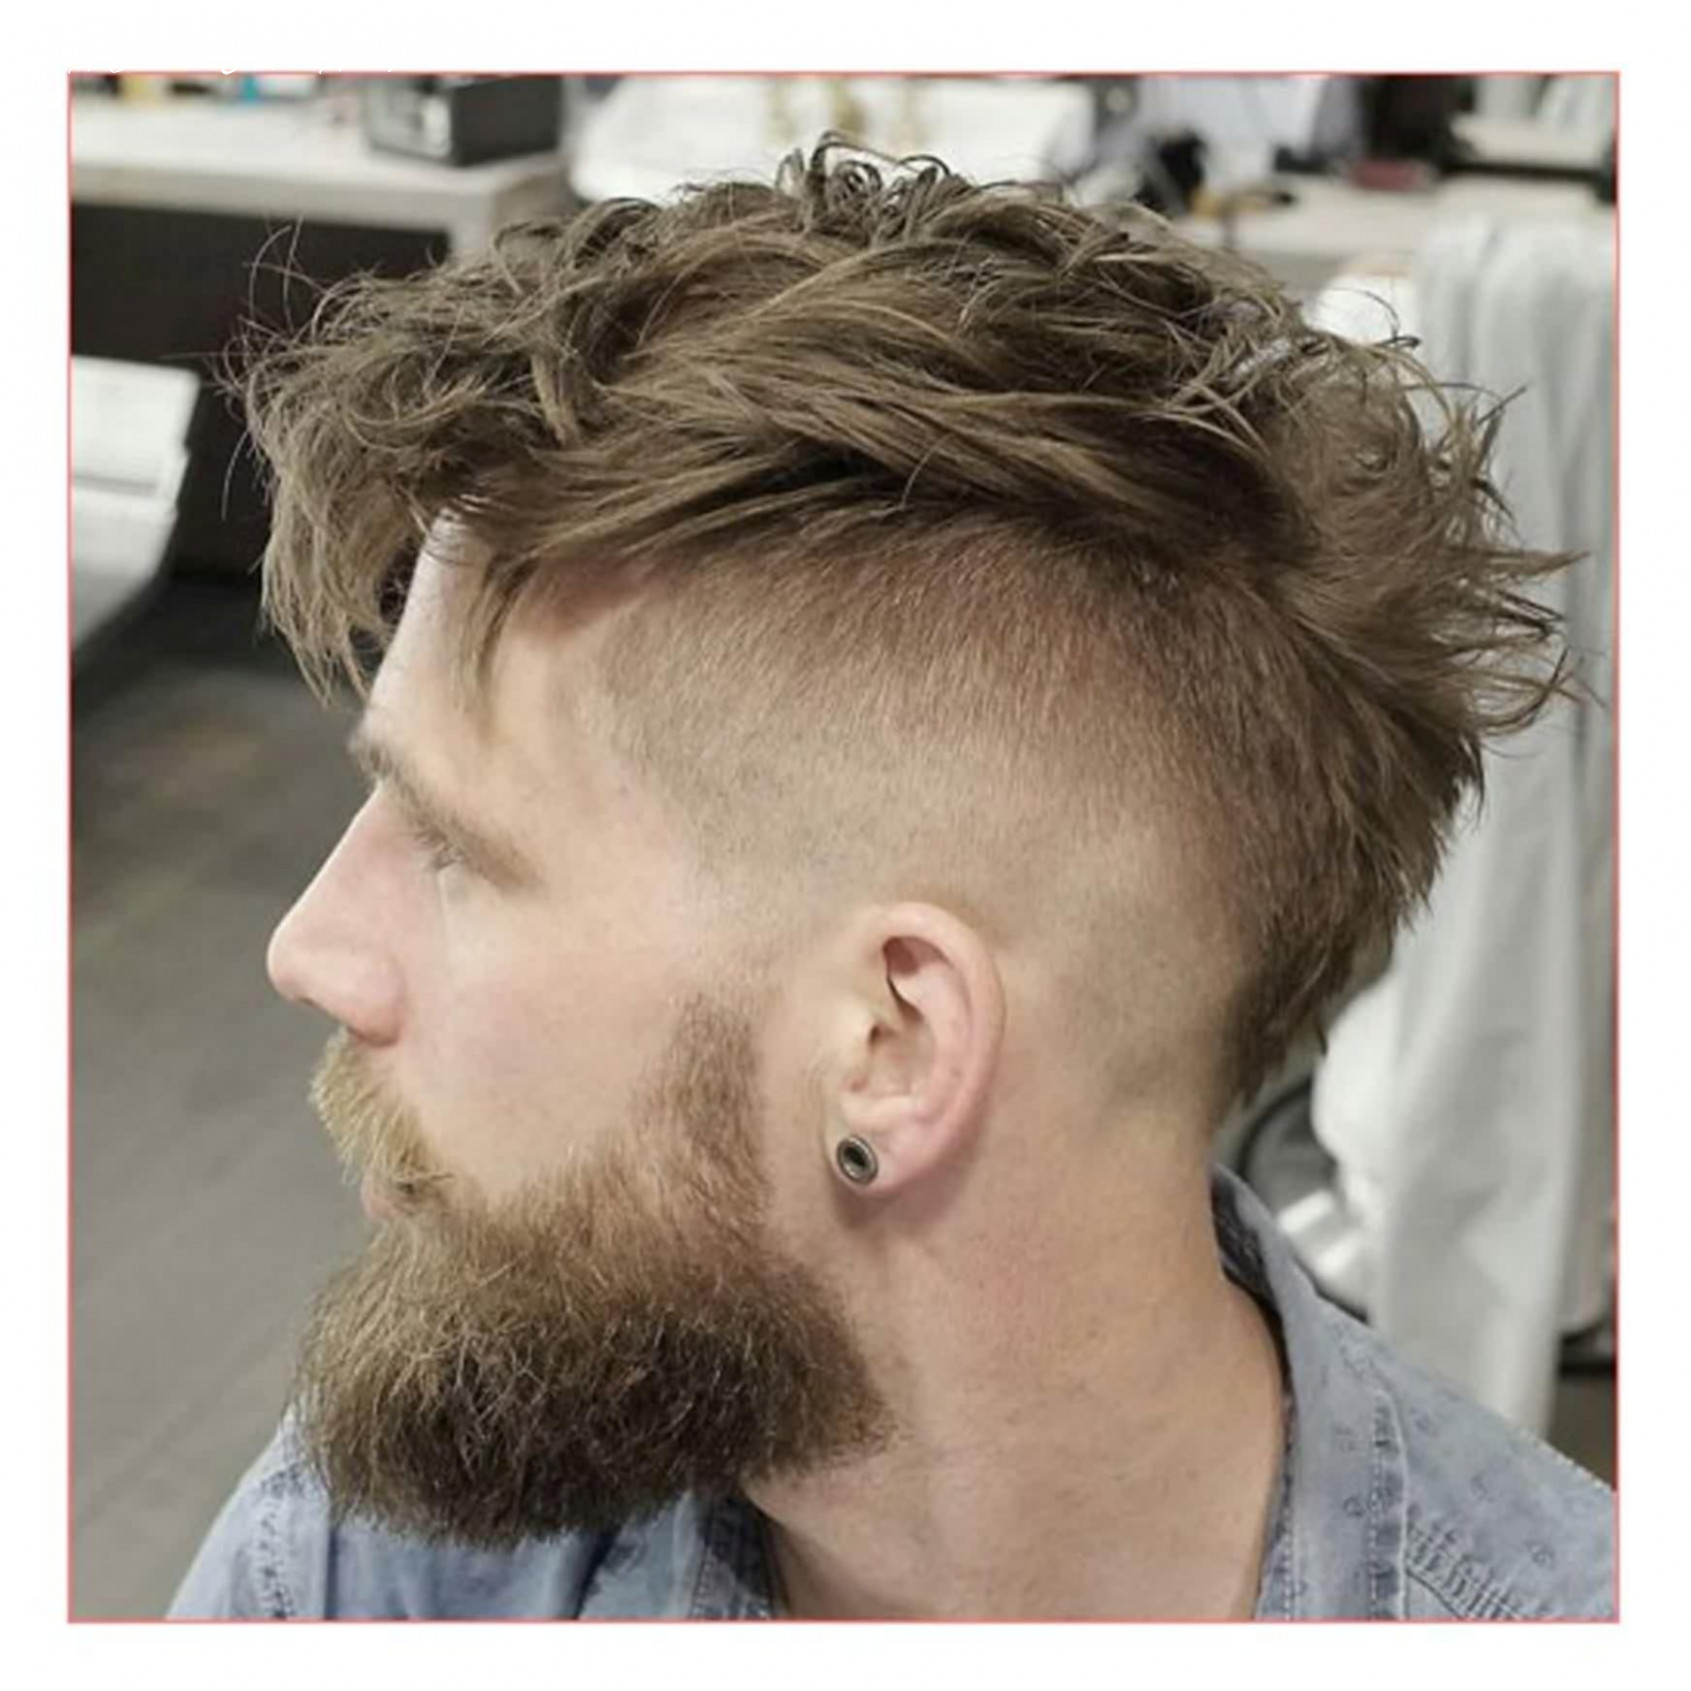 Long hairstyles for men short sides men hairstyles short sides